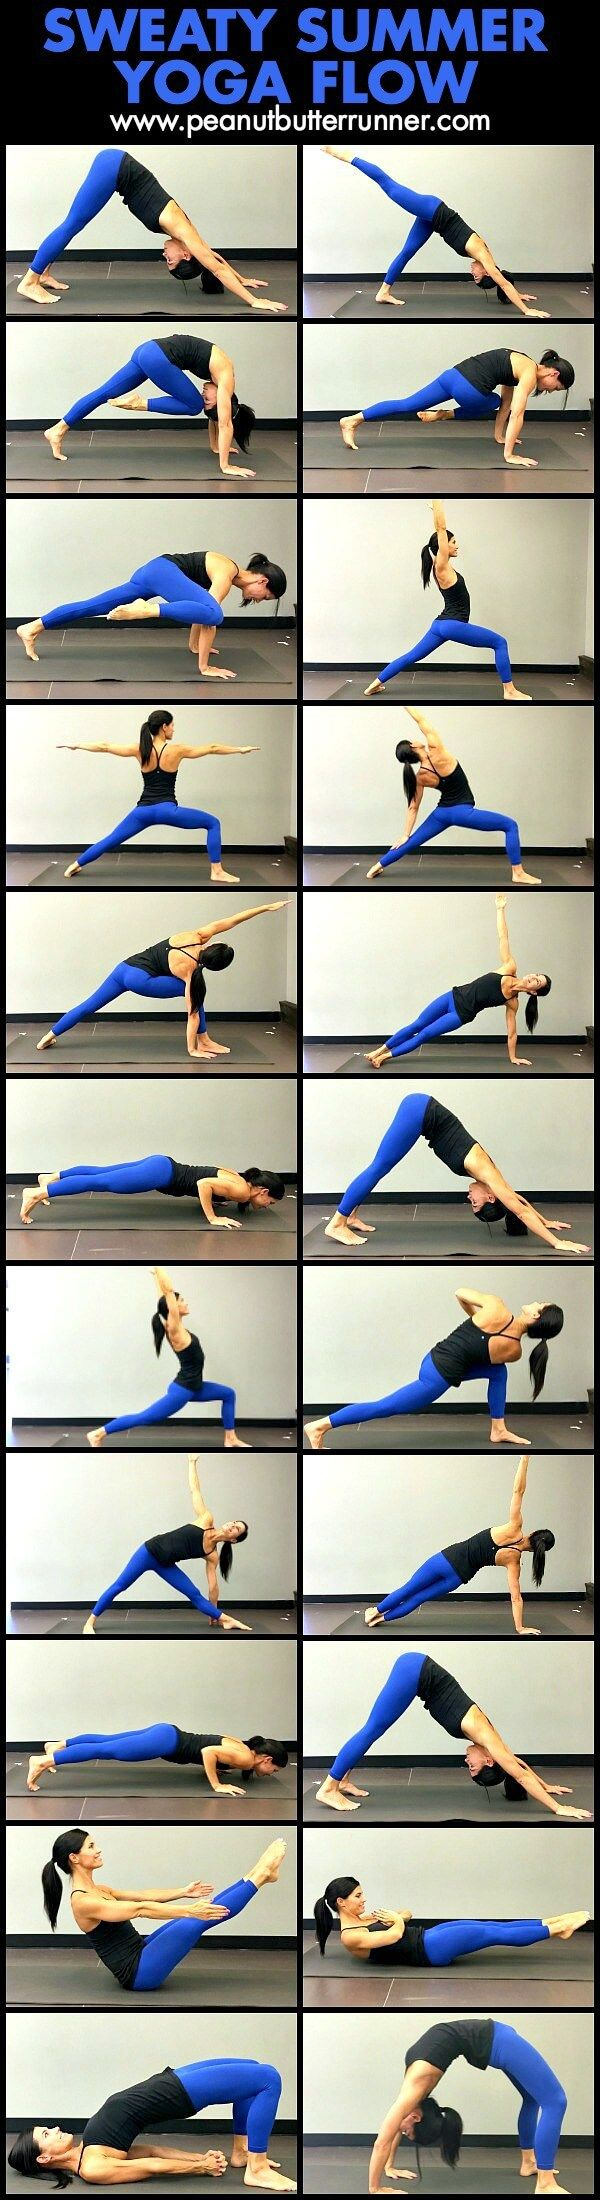 A sweaty summer yoga flow to strengthen and stretch. | Posted by: NewHowToLoseBellyFat.com